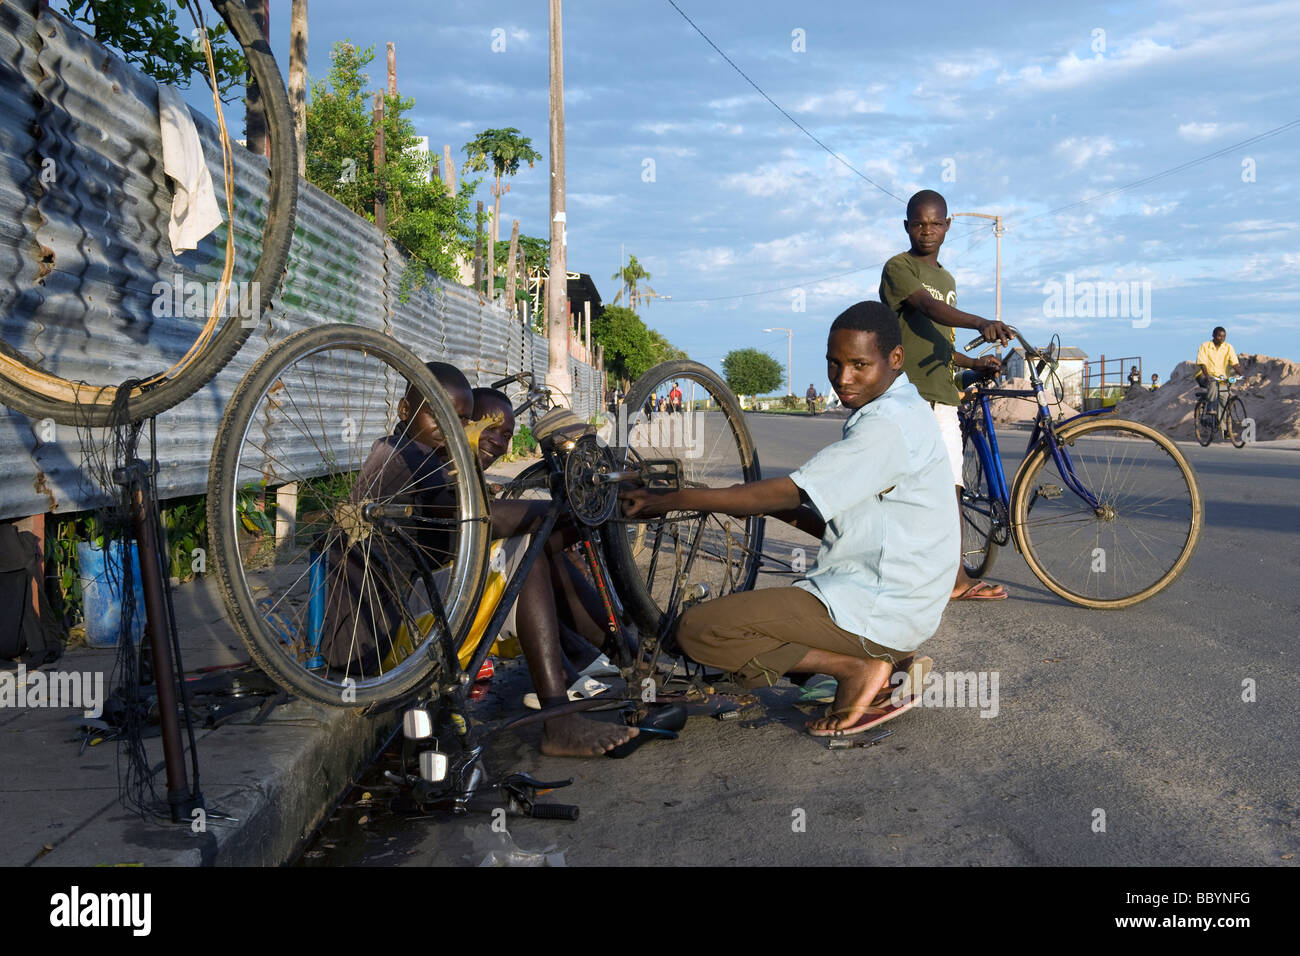 Boys running a bicycle repair workshop on the streets of Quelimane Mozambique - Stock Image